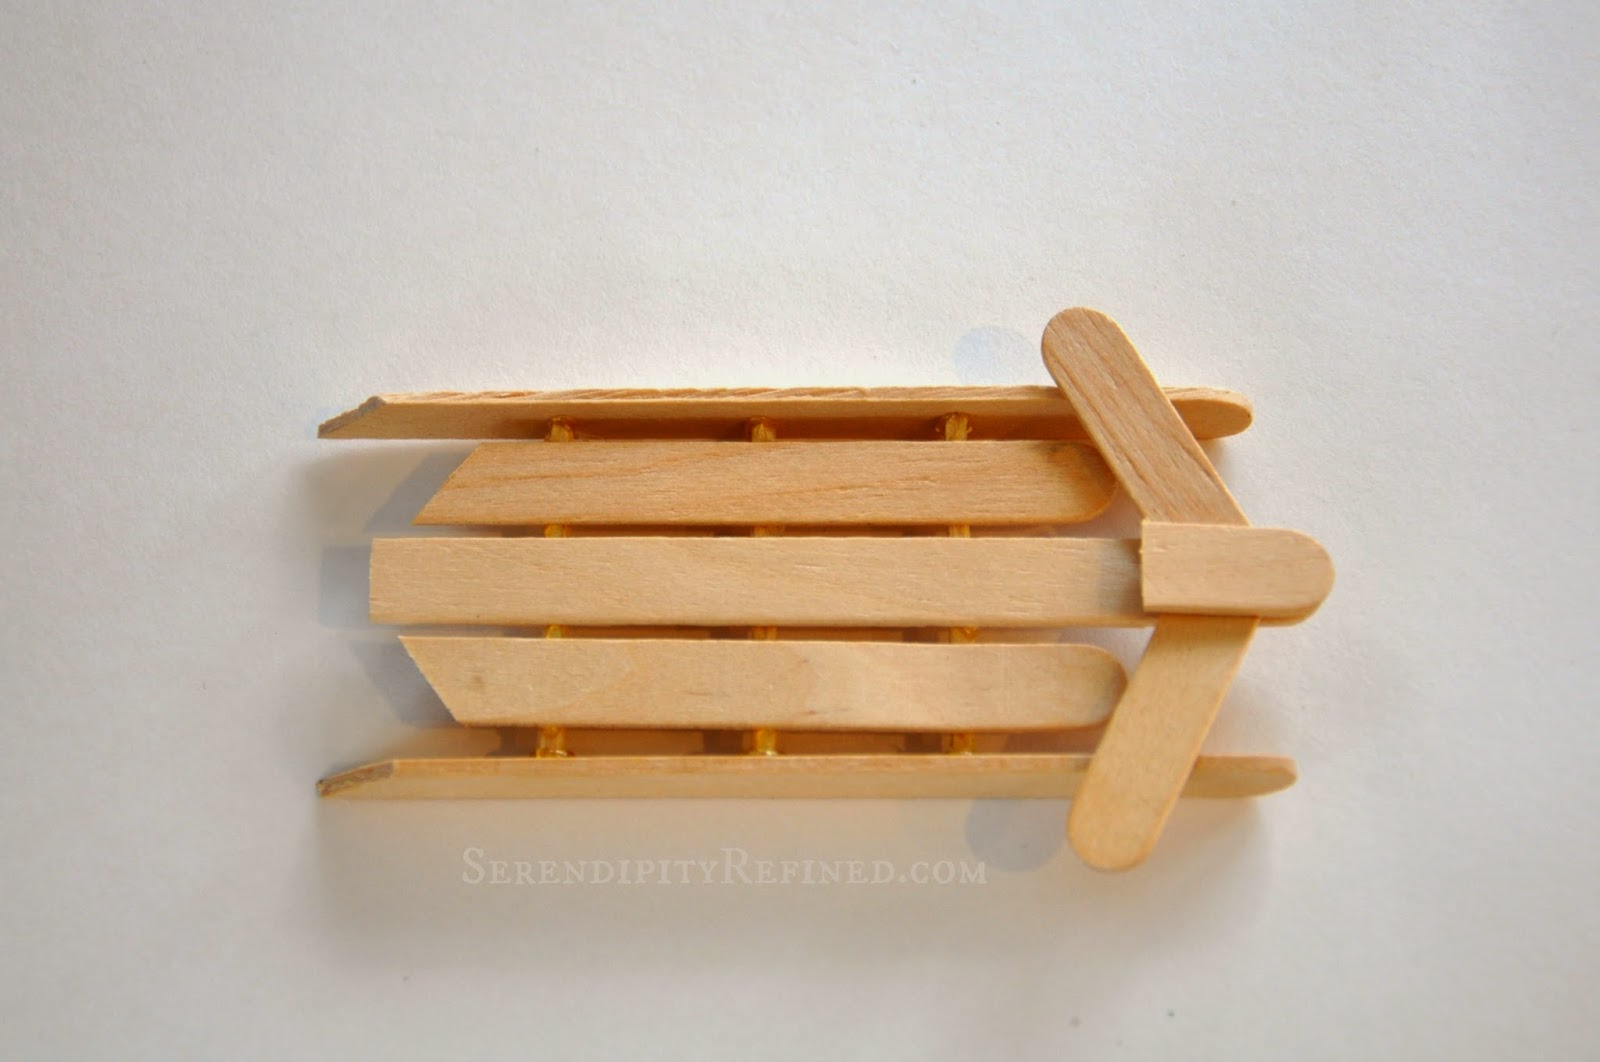 serendipity refined blog simple popsicle stick sled